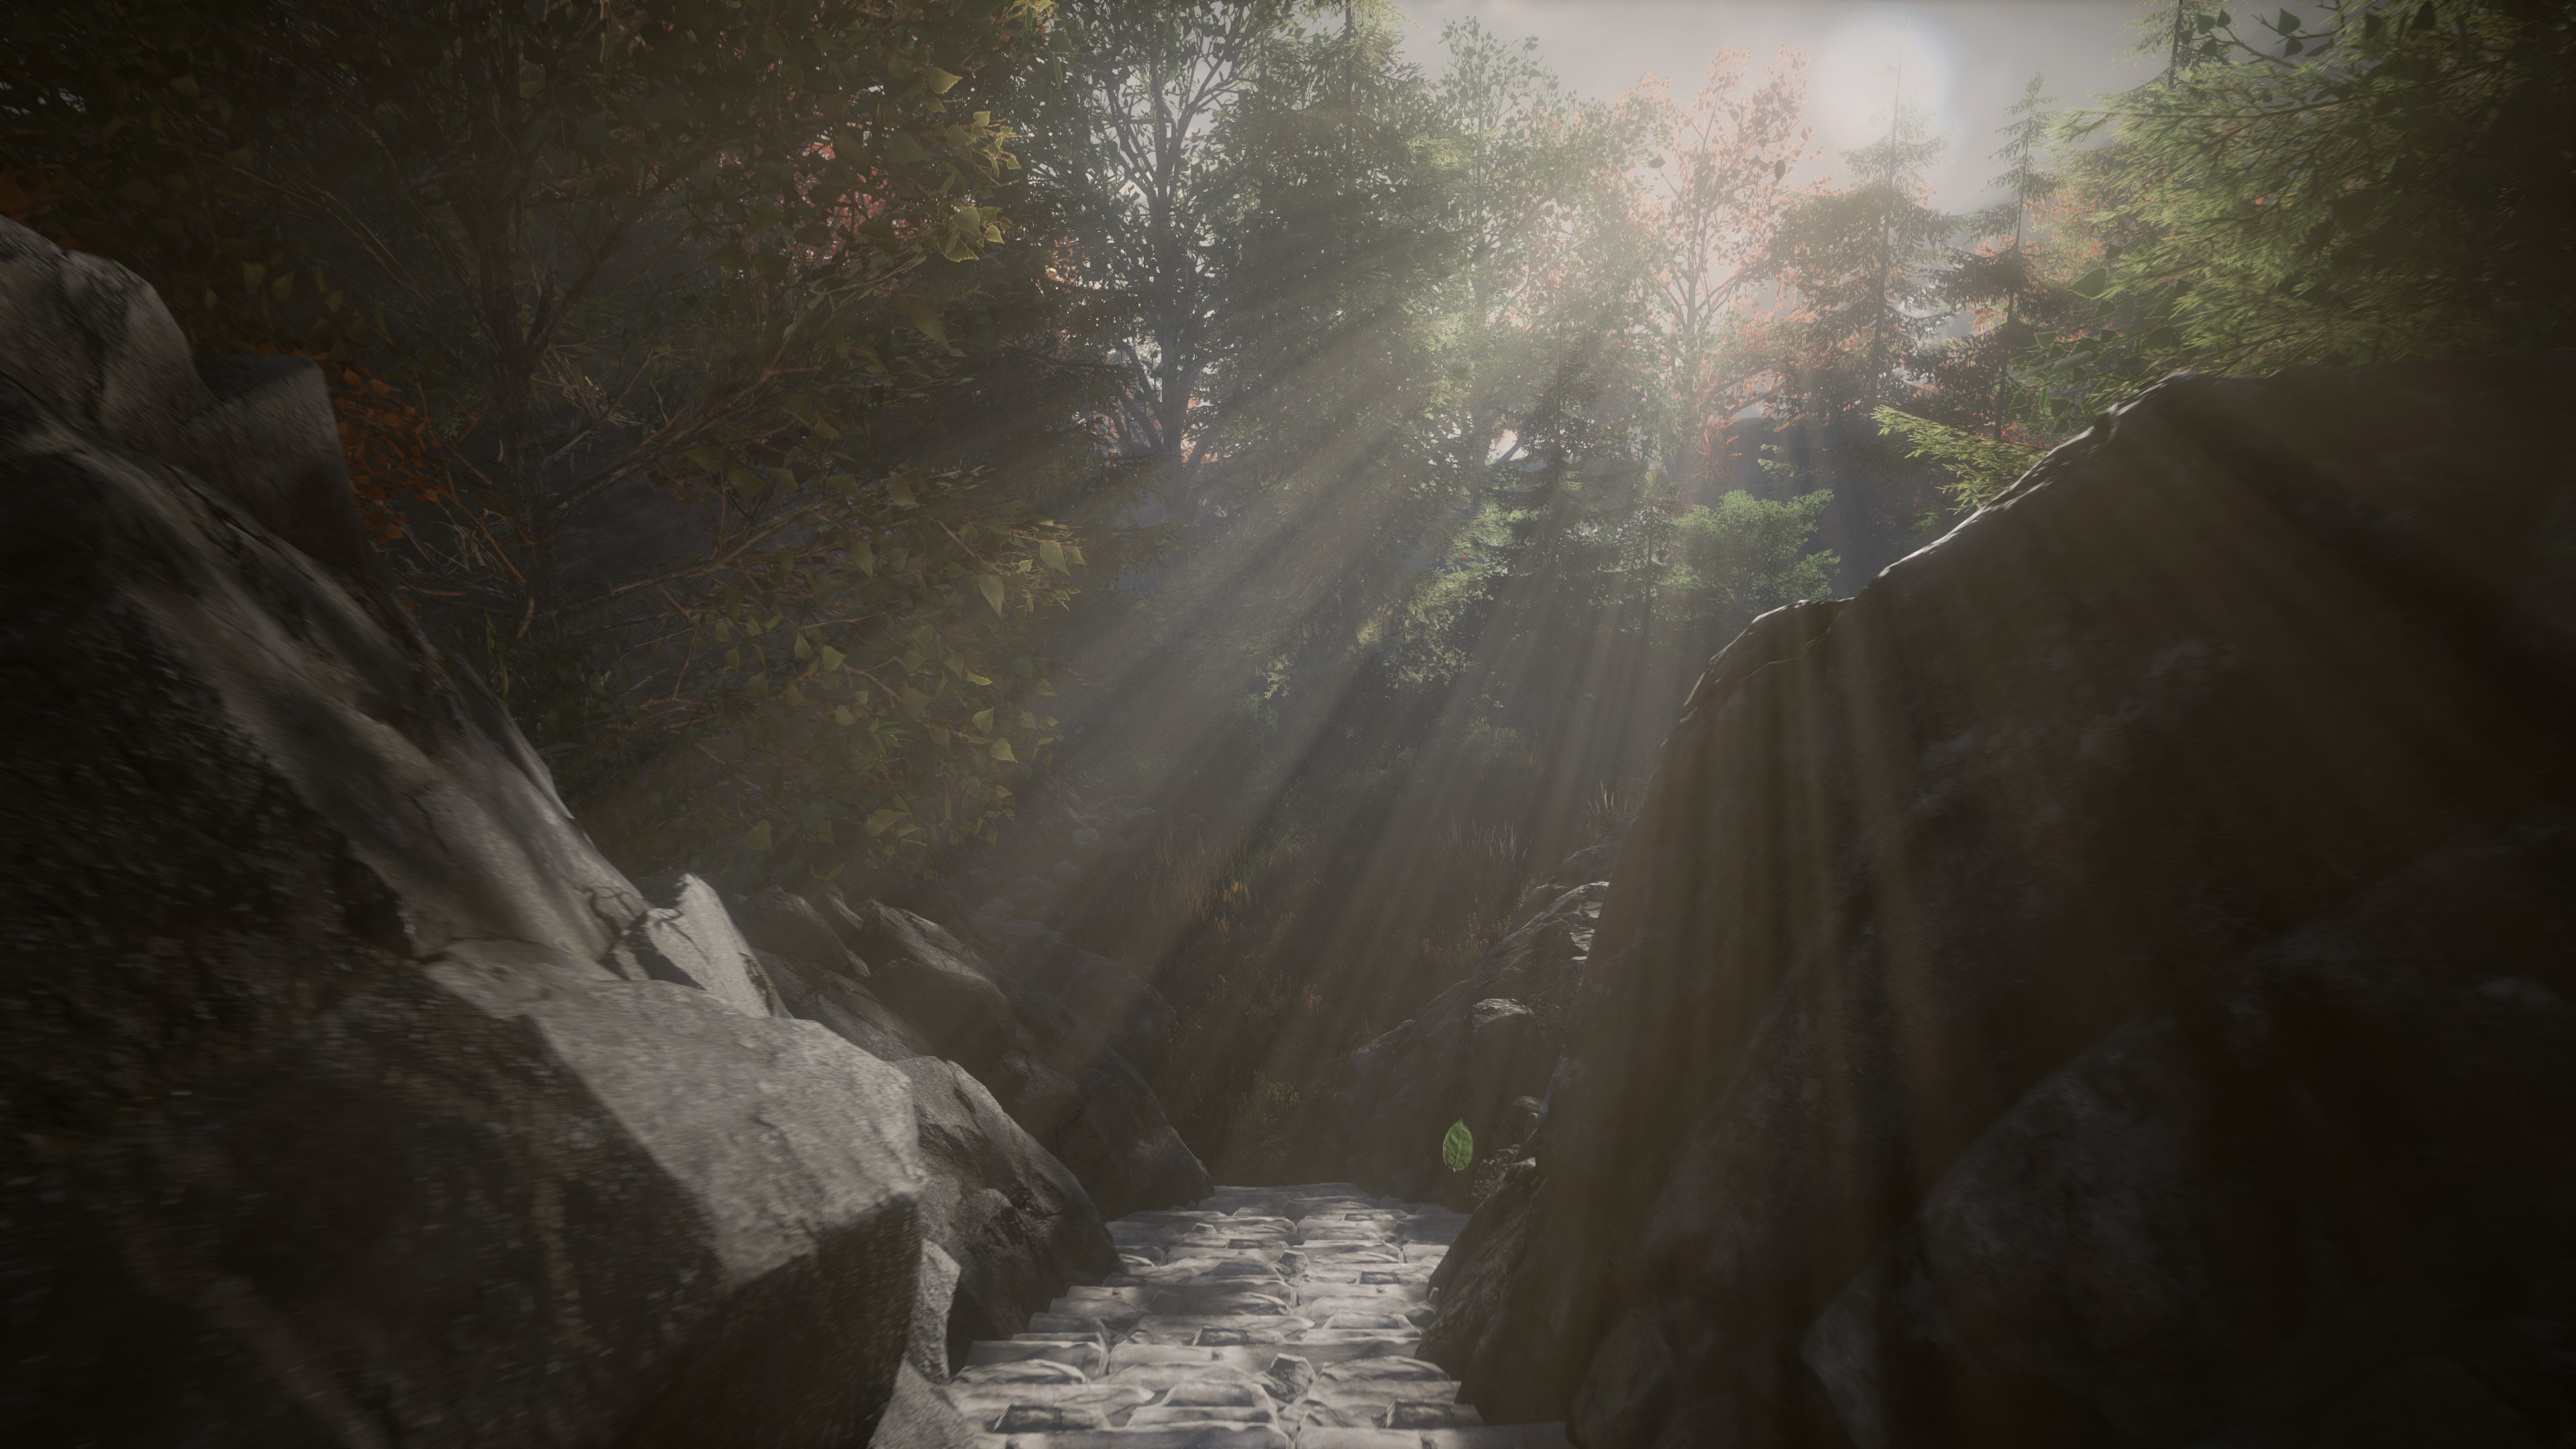 Sunlight streams through trees onto a stone path between large boulders.